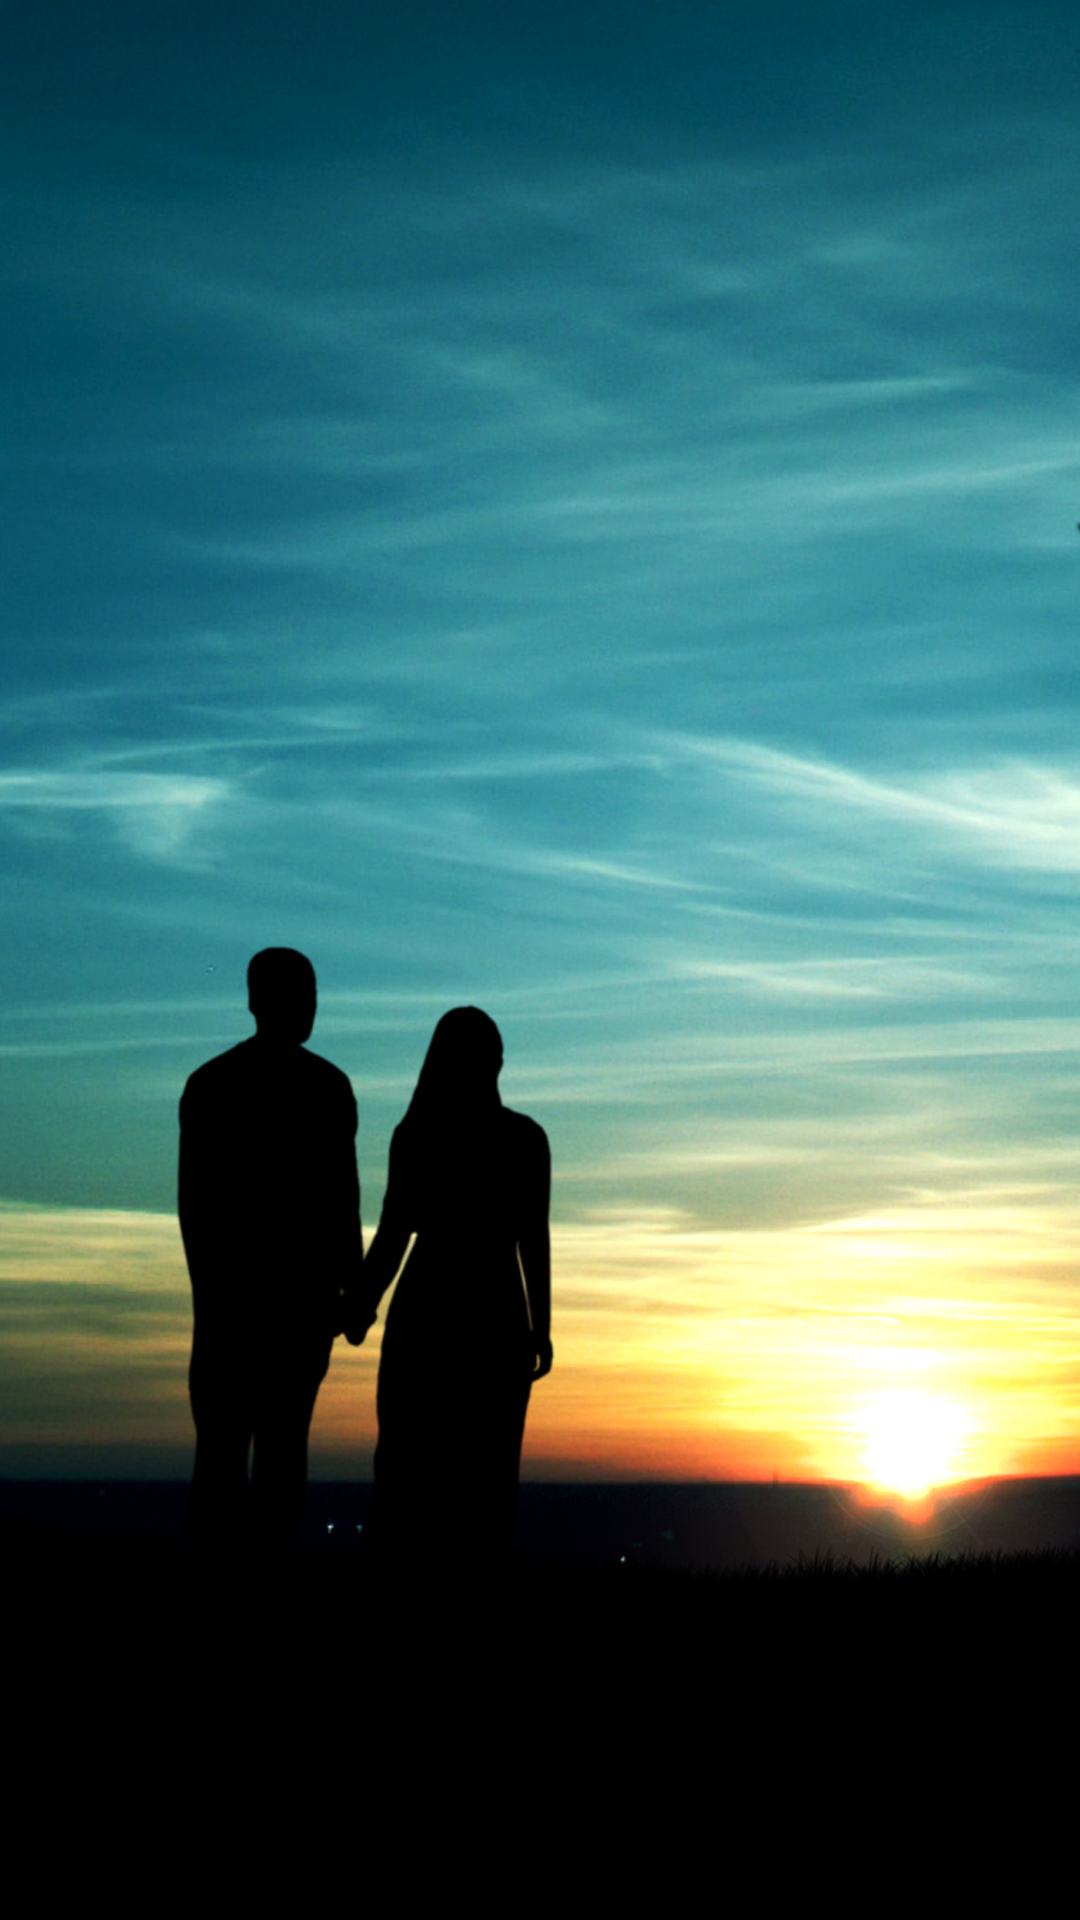 Love couple Hd Wallpaper For Smartphone : Sunset Lovers Smartphone HD Wallpapers ? GetPhotos